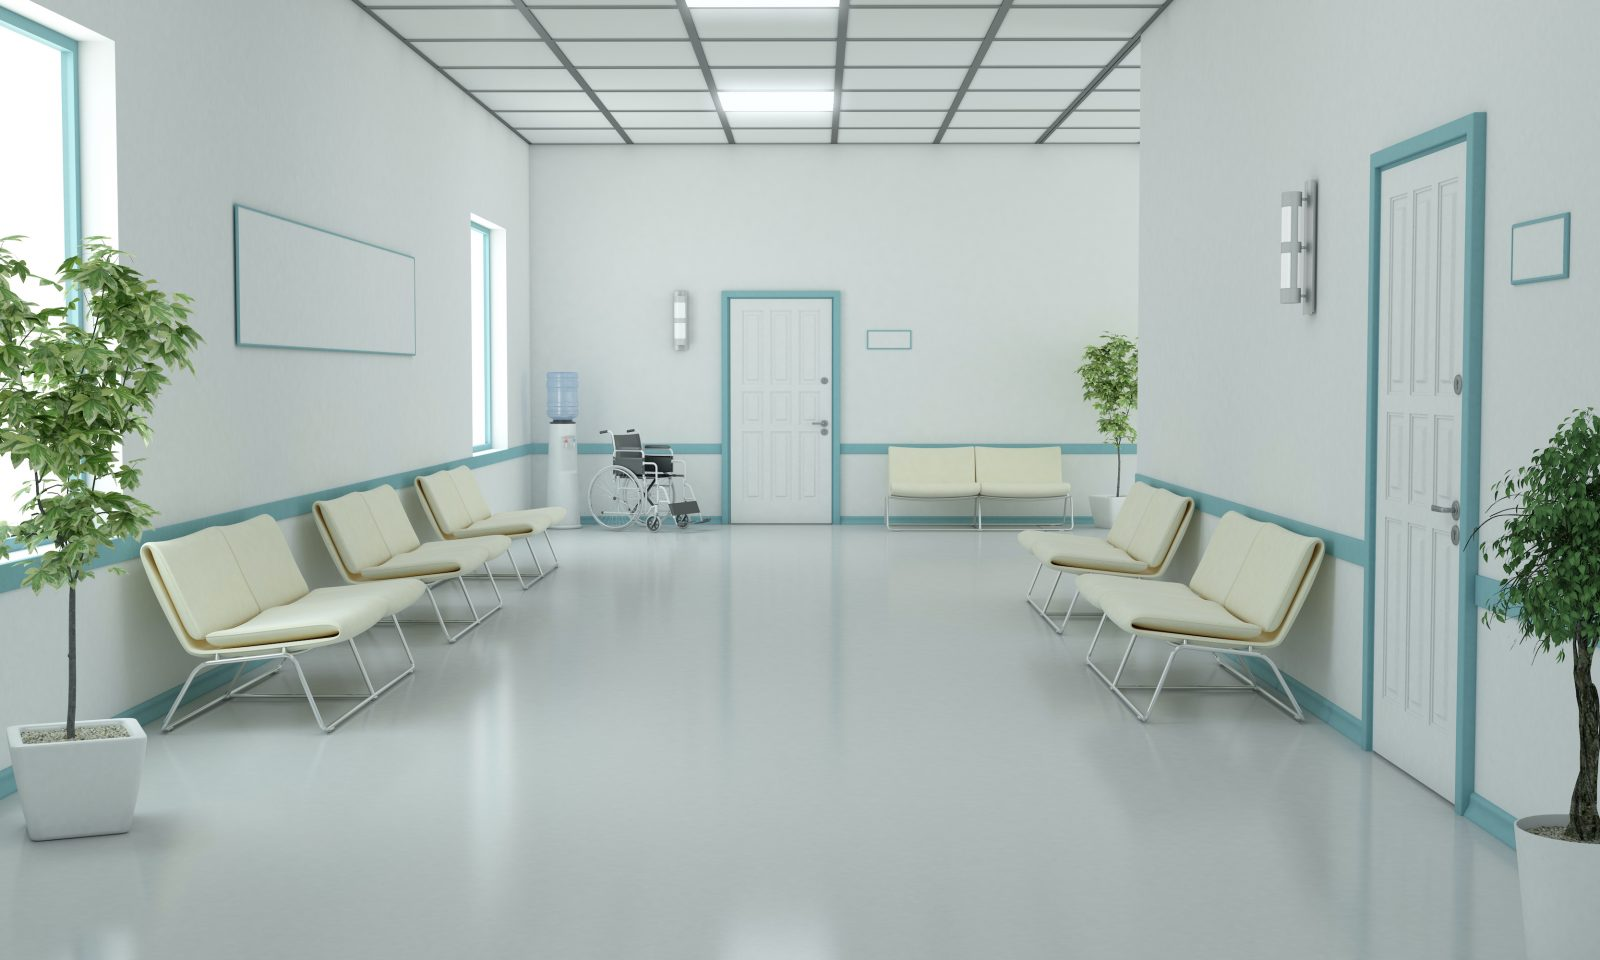 AIS Hospital waiting room